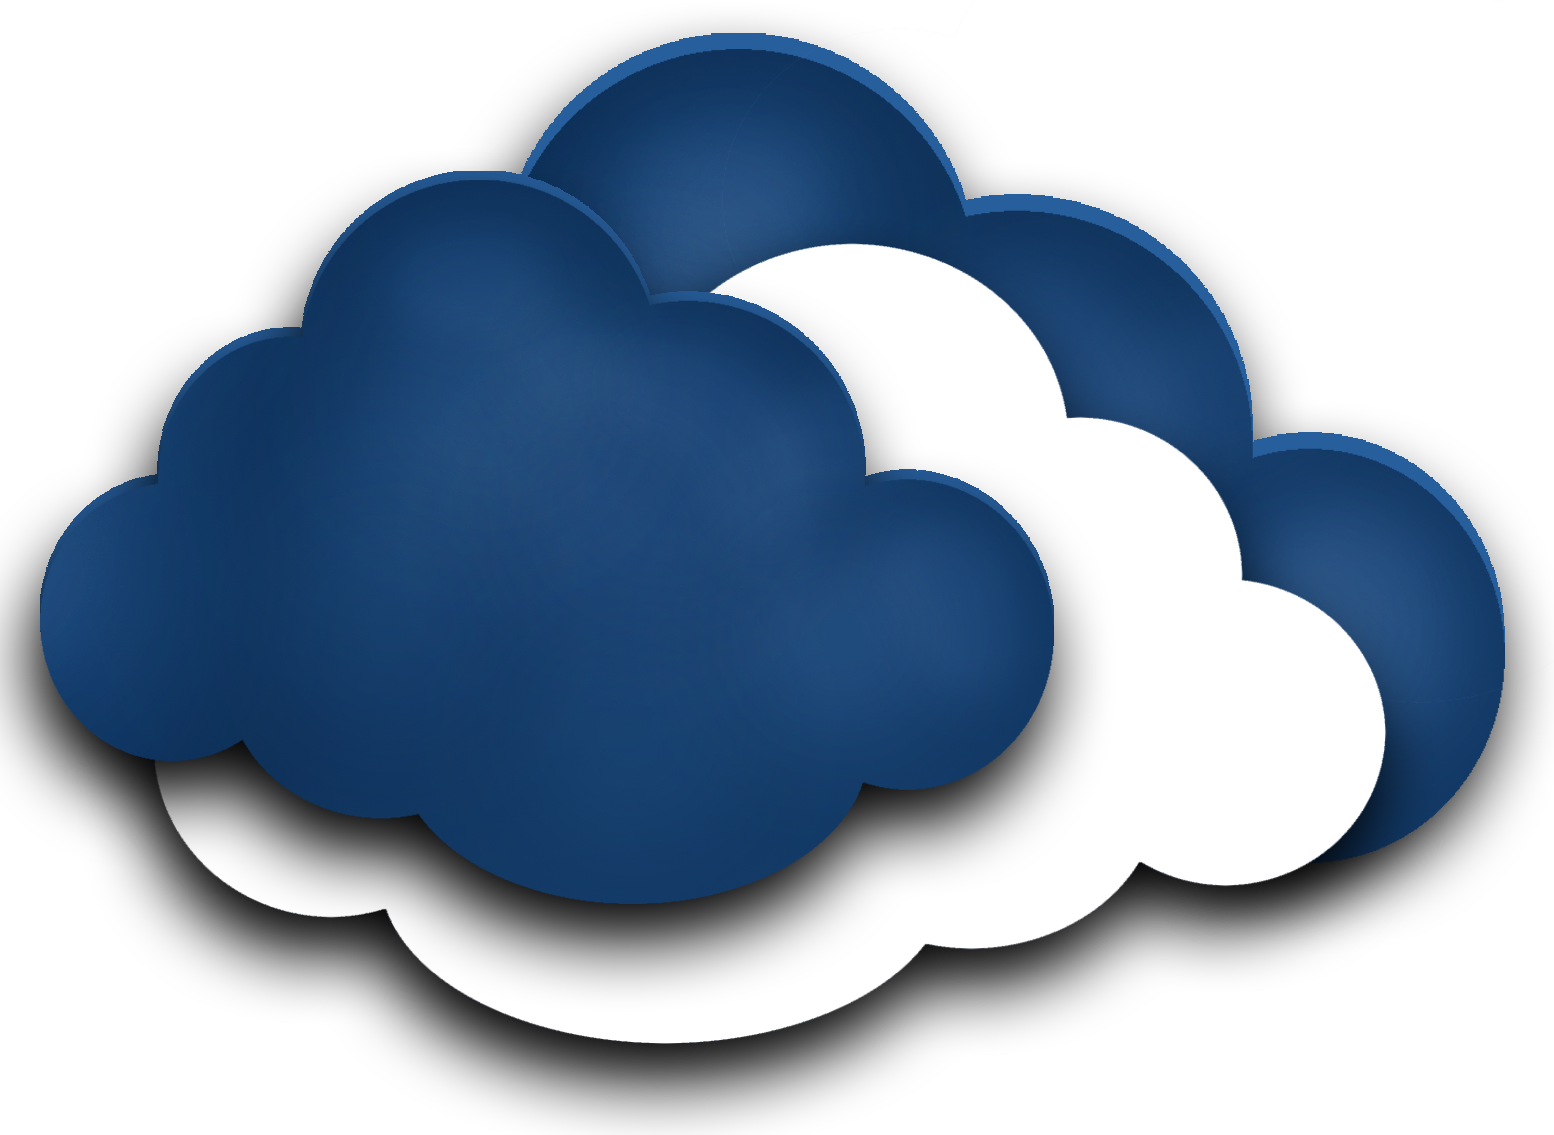 Clouds Png | Clipart Panda - Free Clipart Images